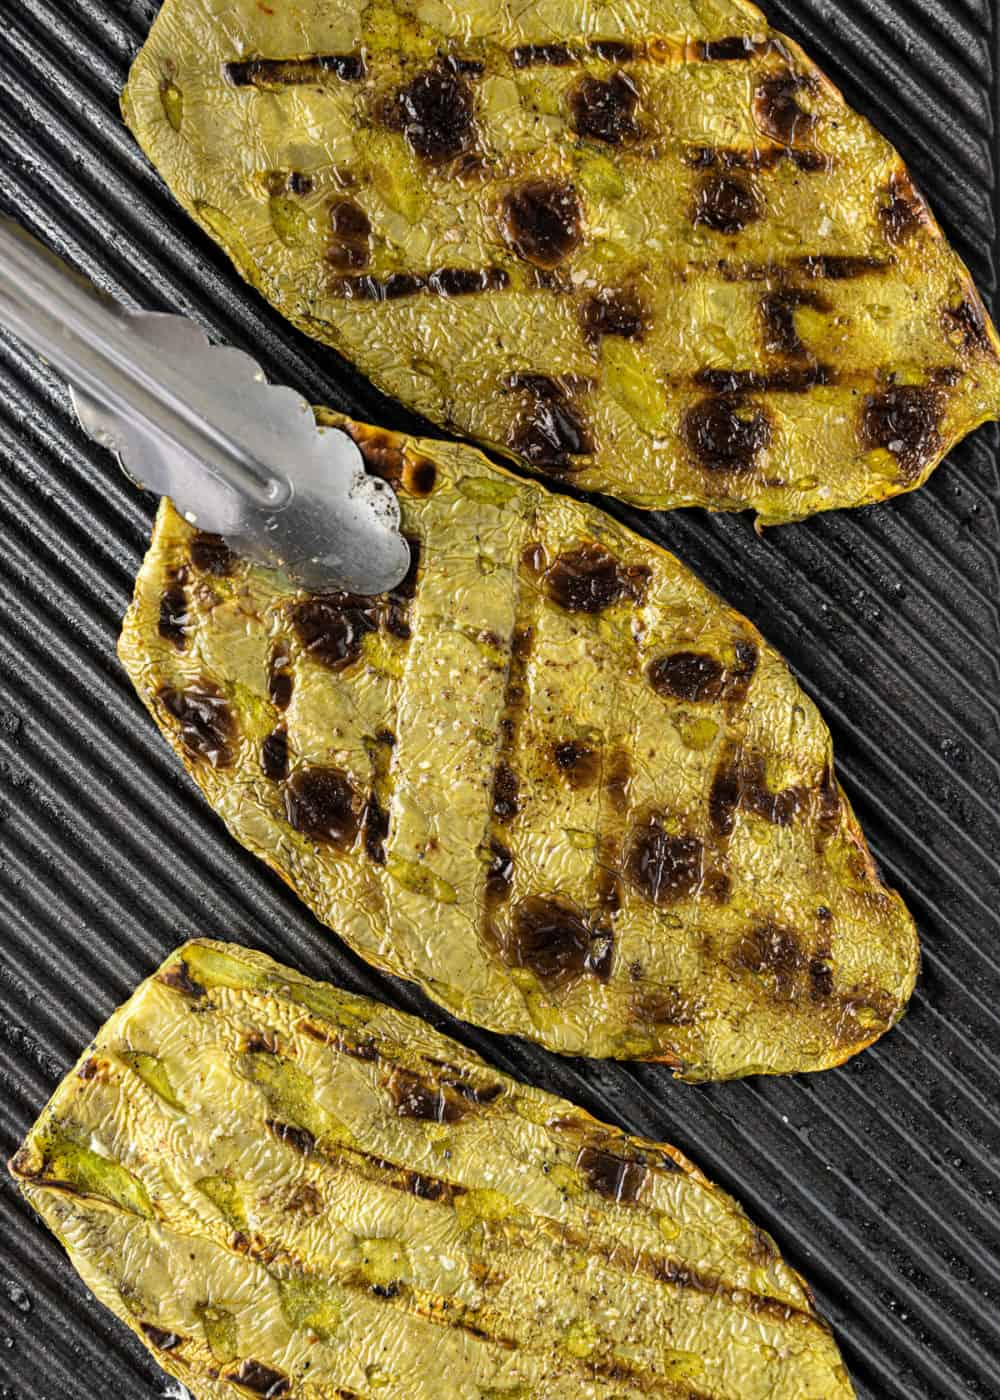 overhead image: 3 cactus paddles on a grill, one being turned with metal tongs